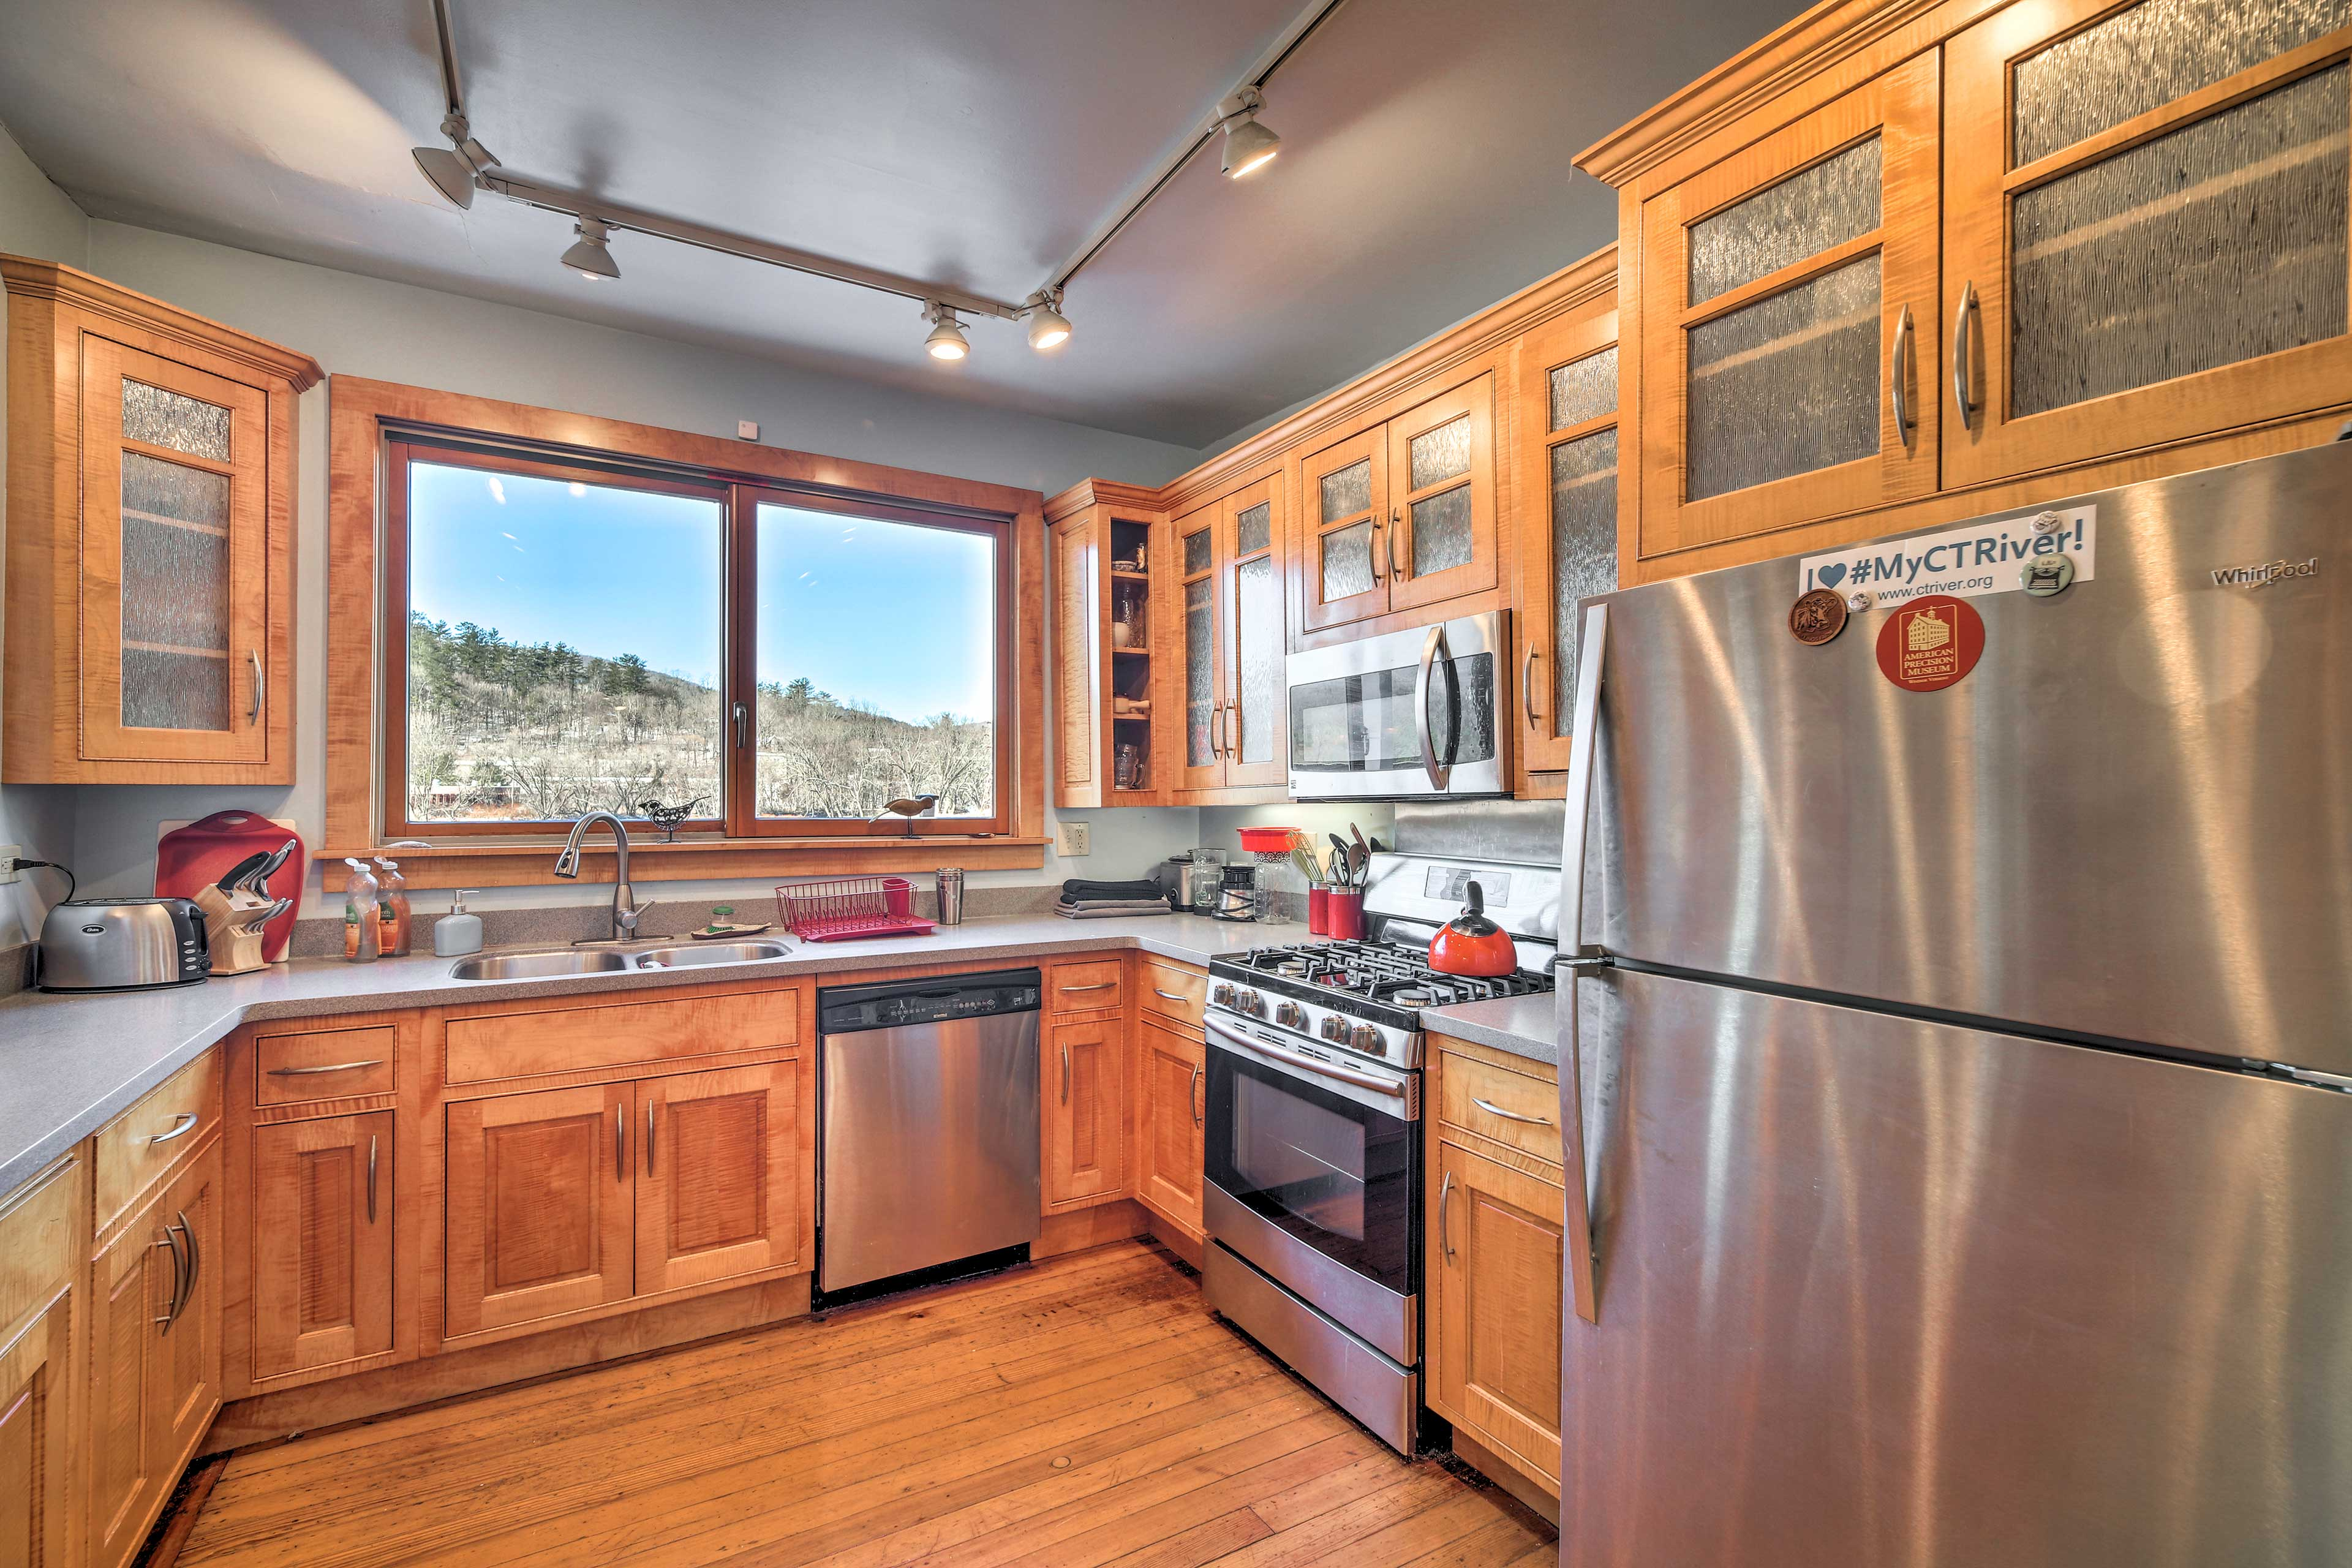 This kitchen is fully equipped with stainless steel appliances.